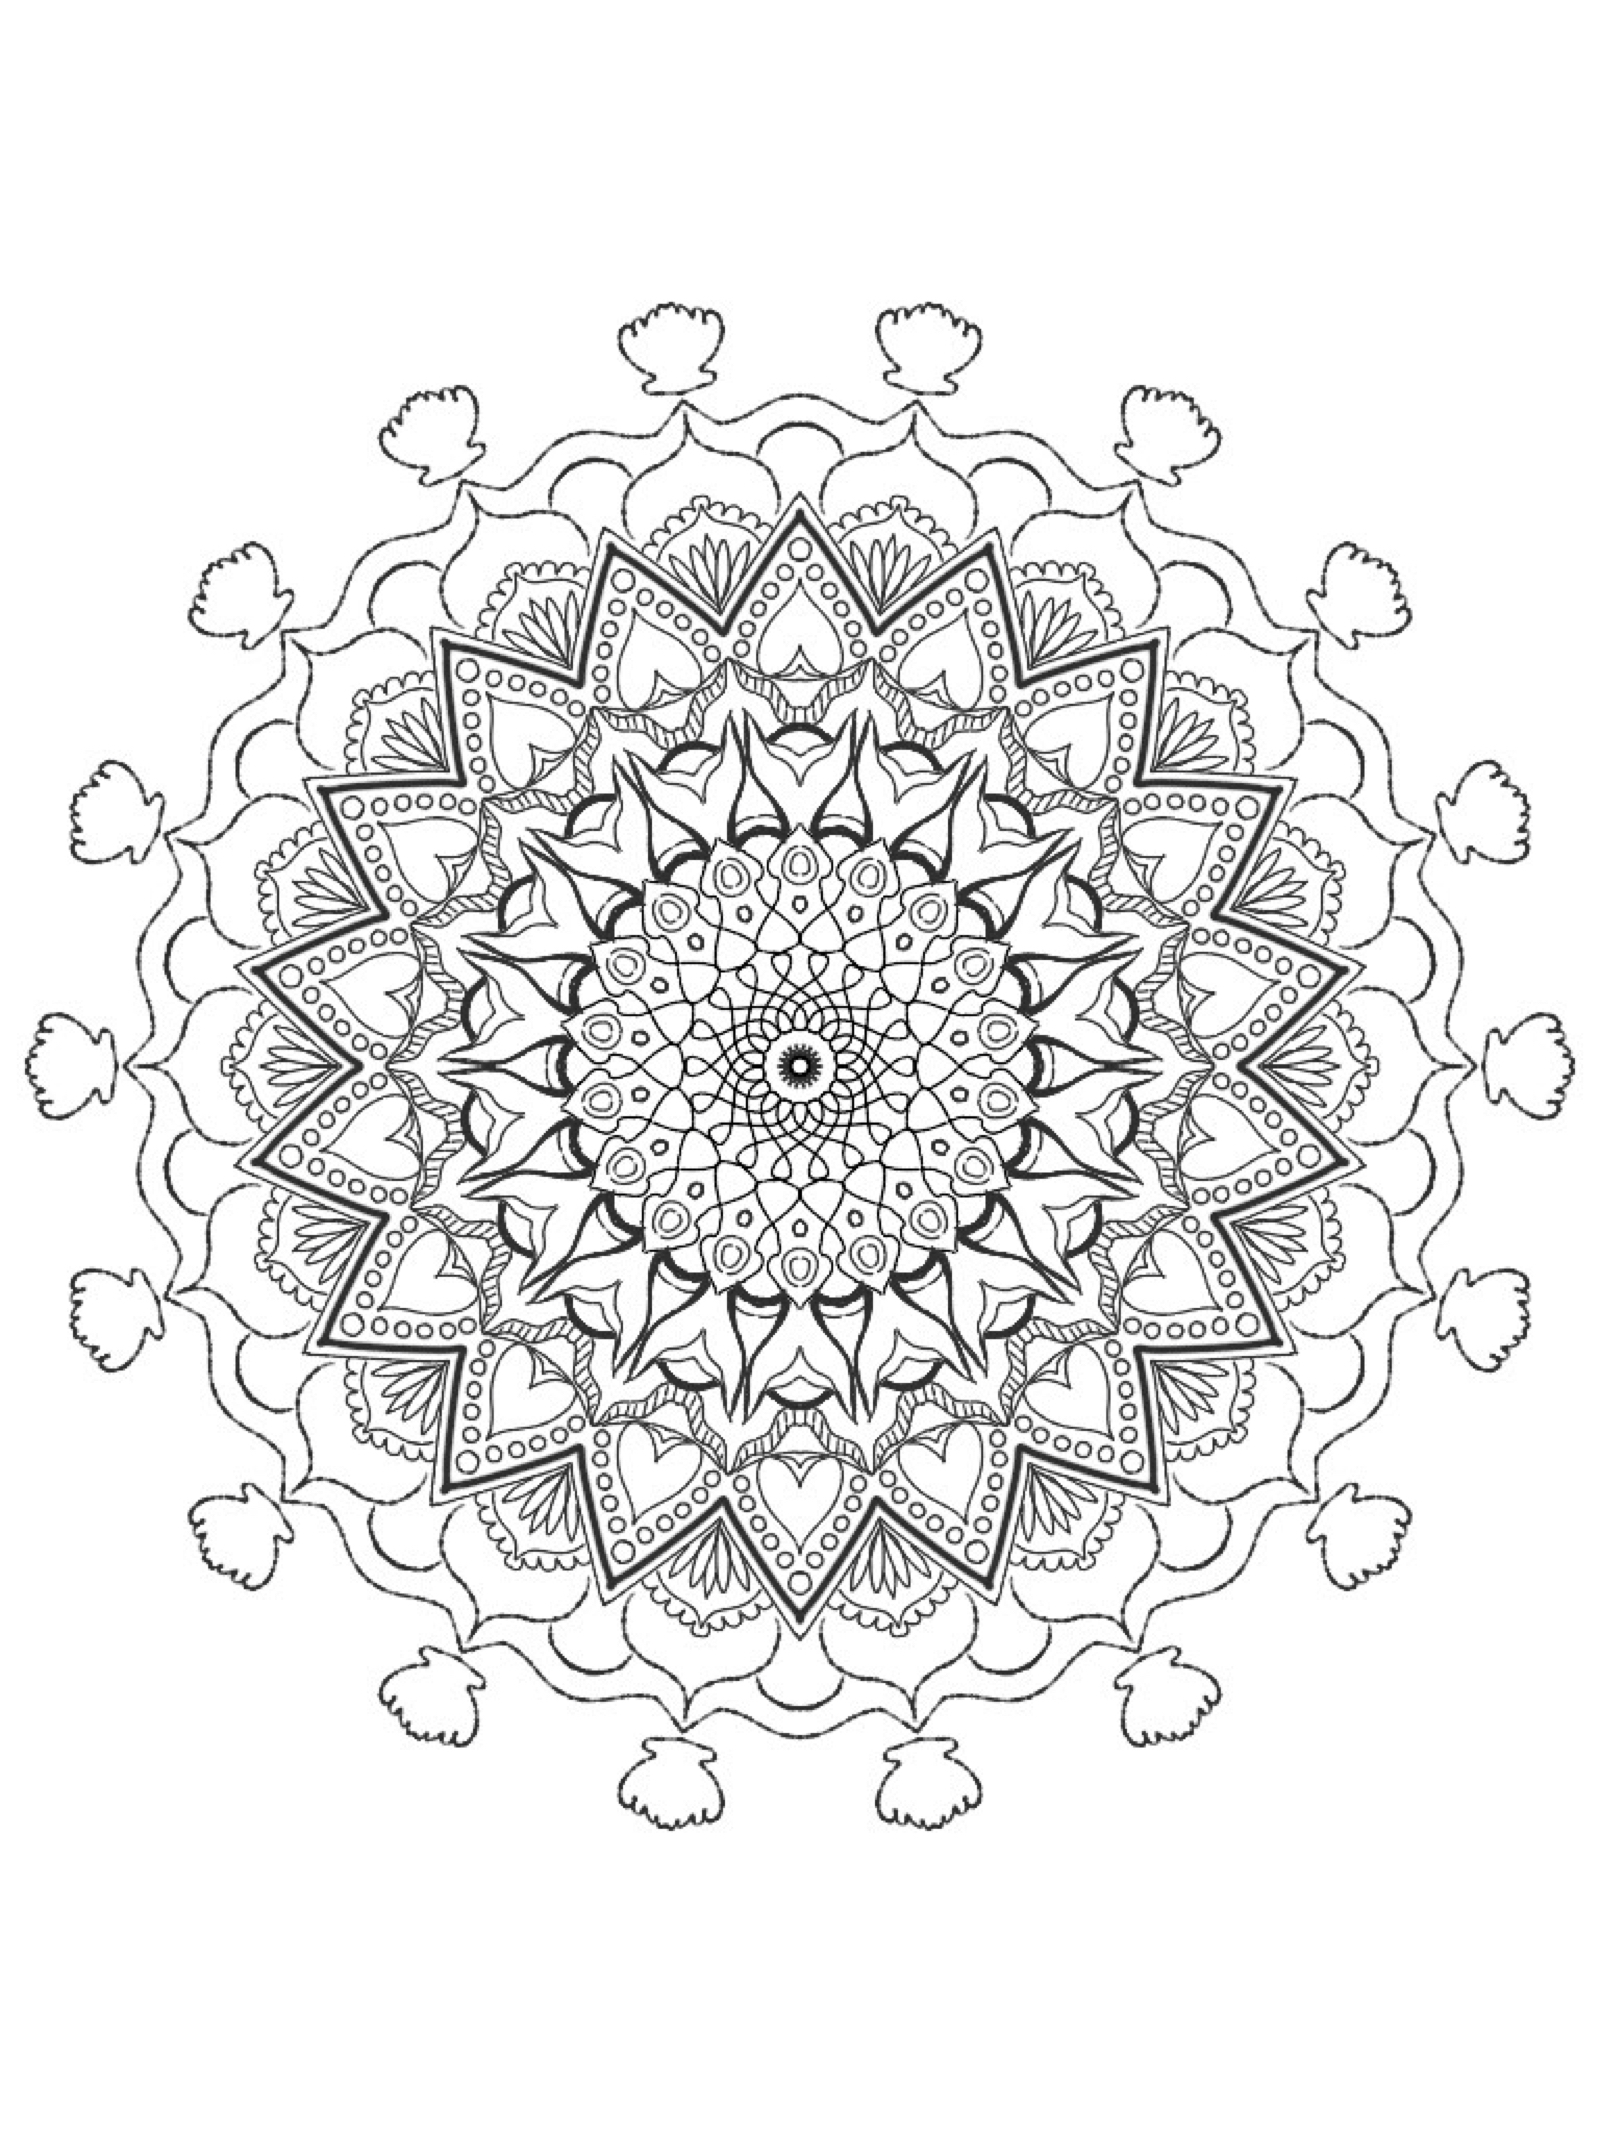 Mandala Featuring Mermaid Tails Coloring Page